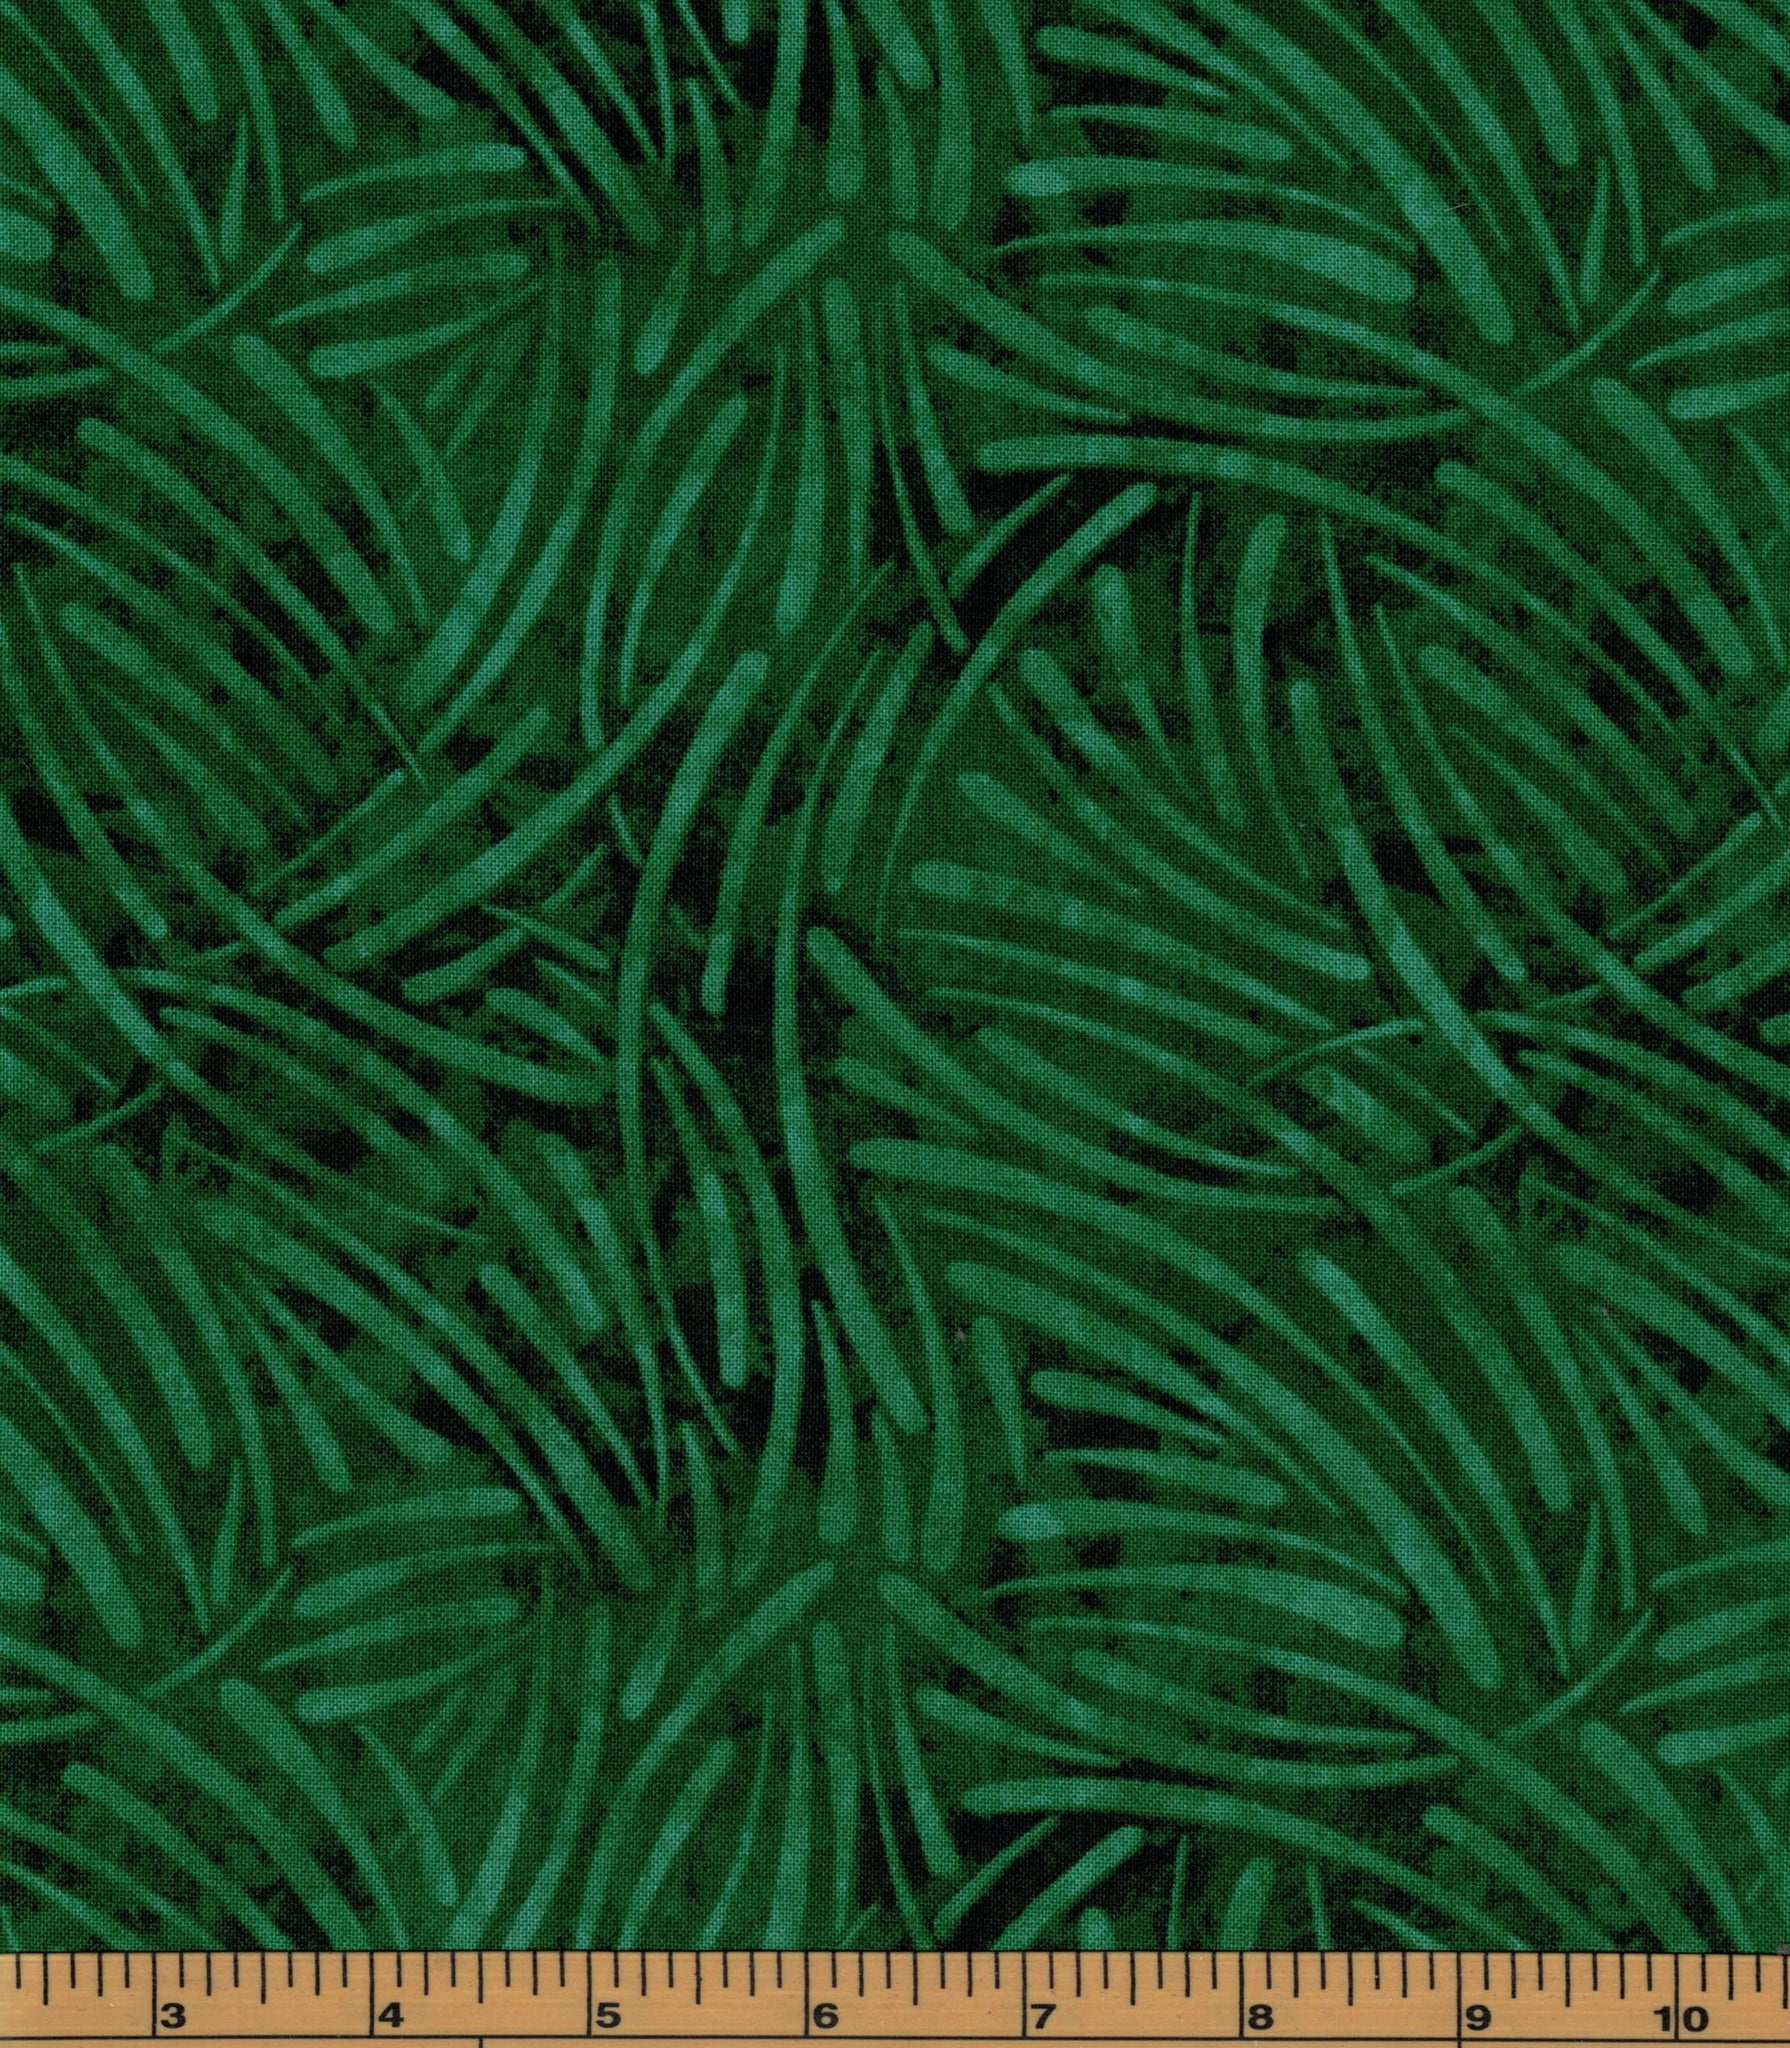 Green Grass Fabric - Fat Quarter